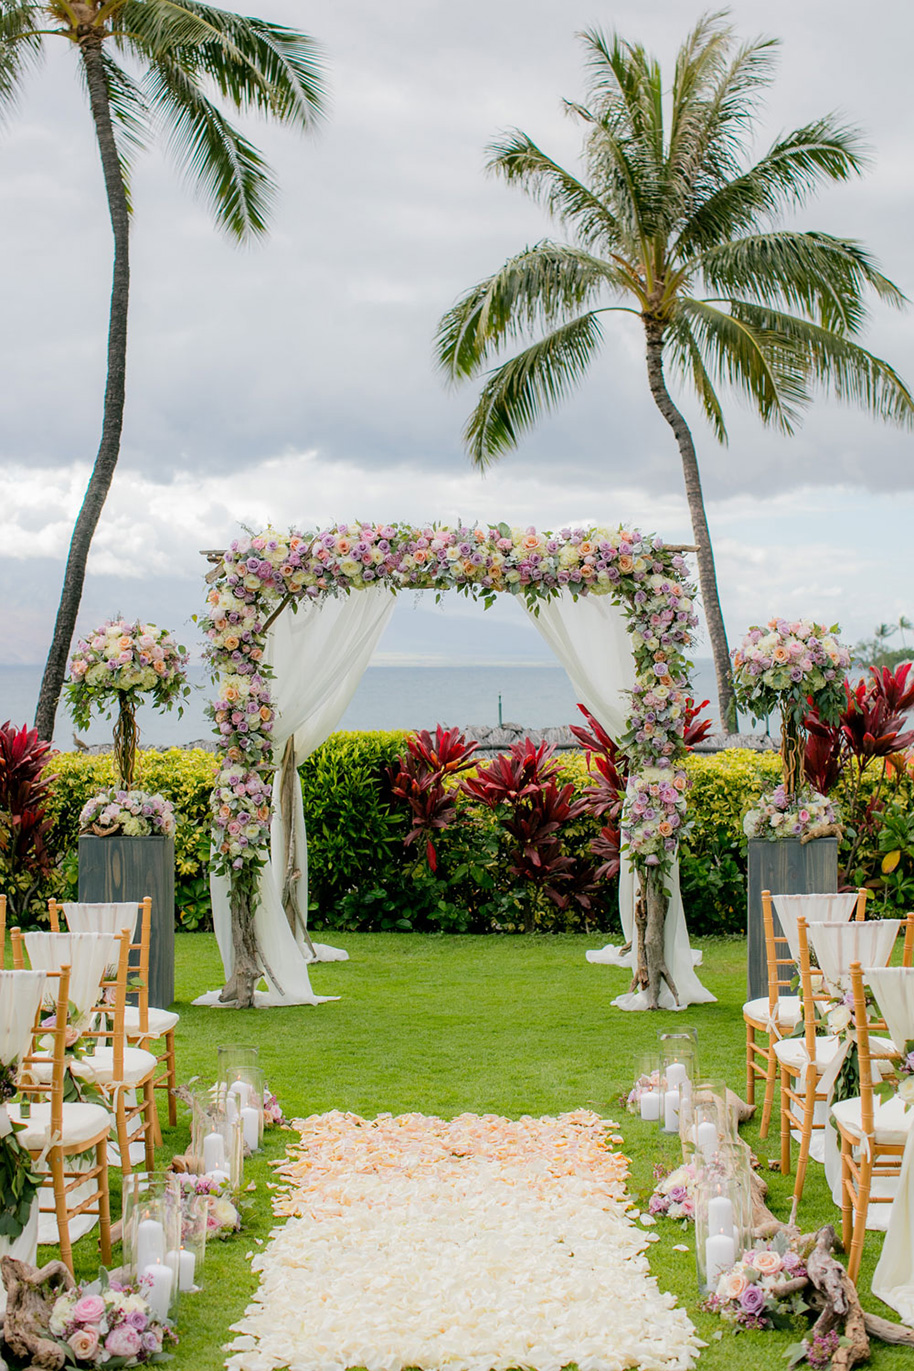 Four-Seasons-Maui-Wedding-101016-7.jpg